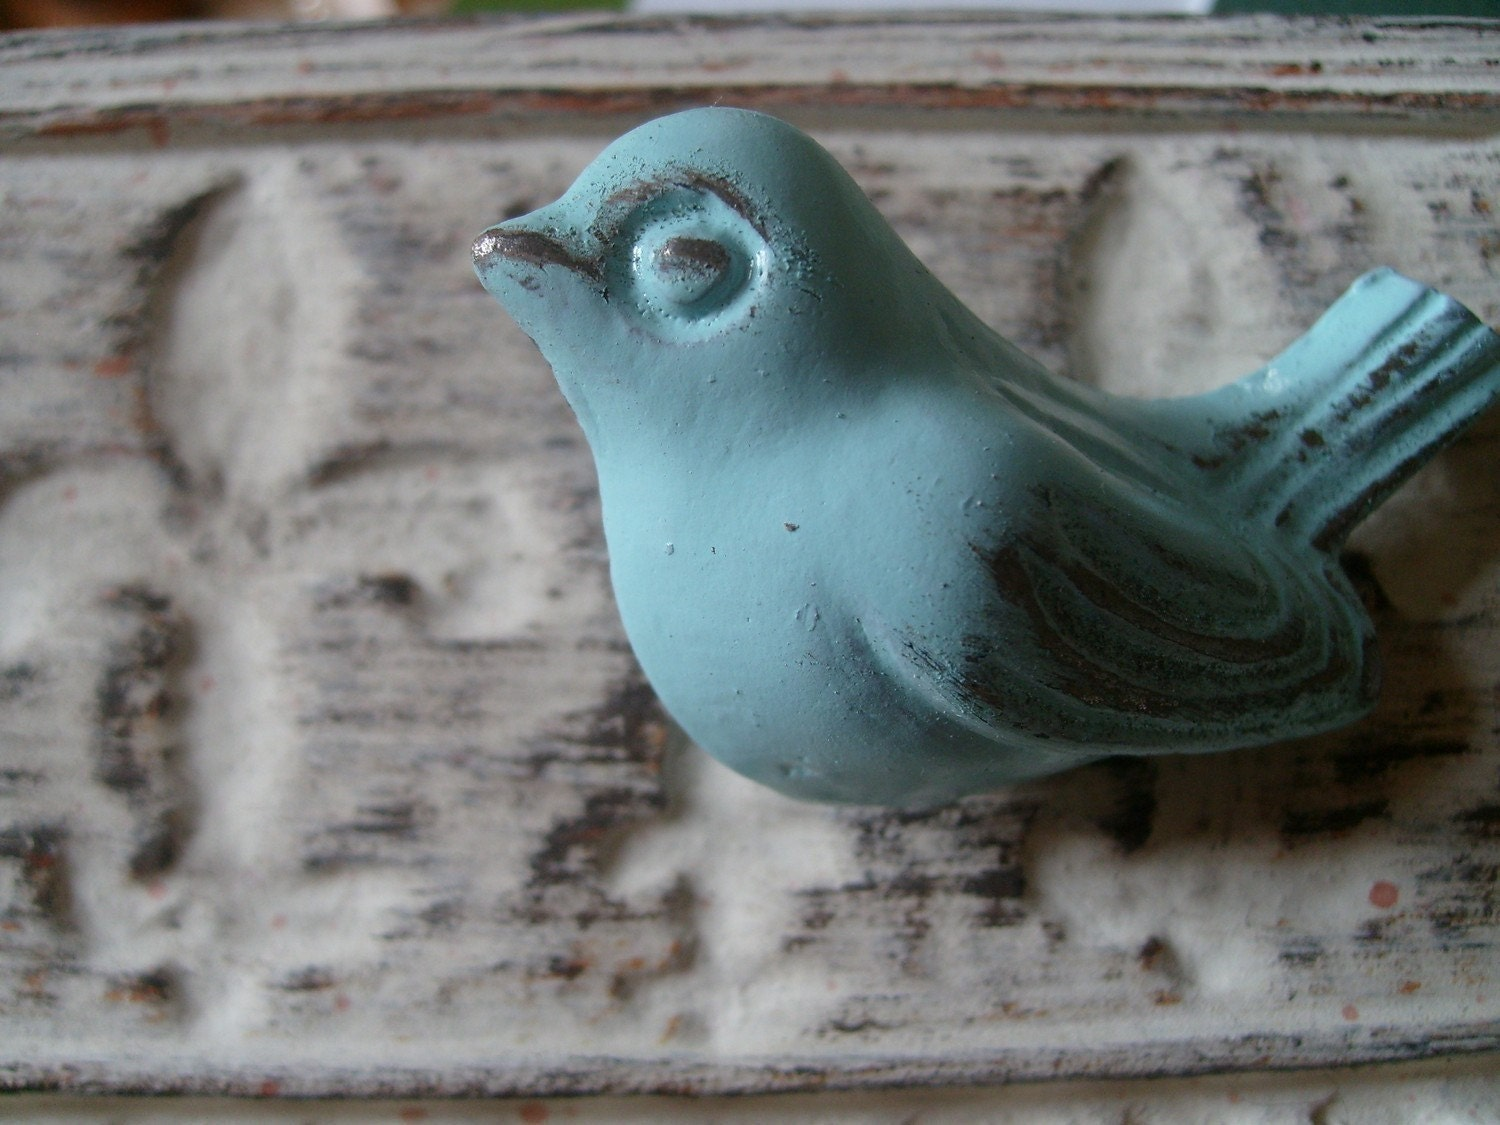 bird cabinet knobs, drawer pulls, 4 bird knobs NEW COLOR Robin's egg blue